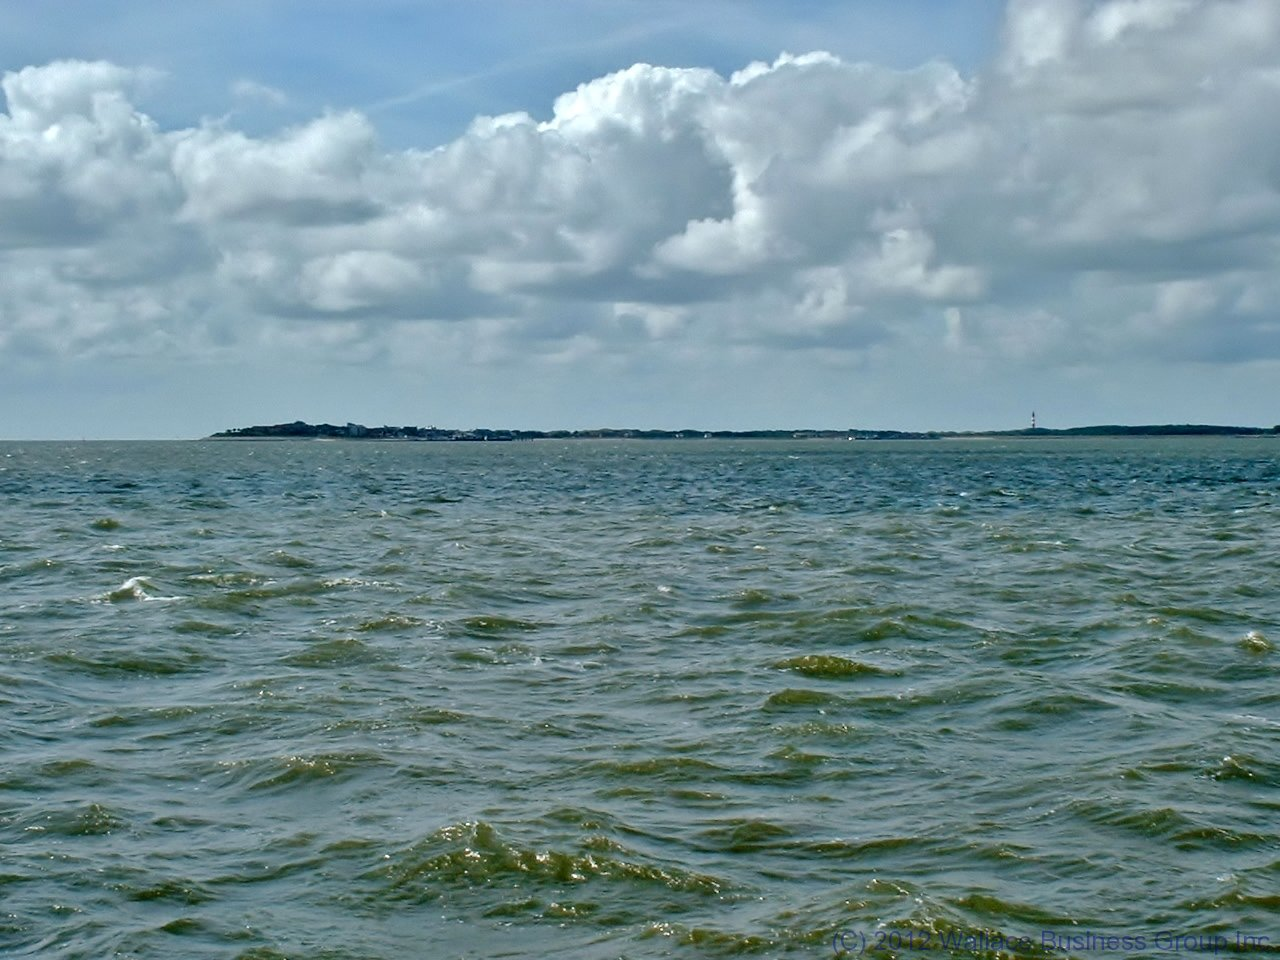 Approaching Amrum from Föhr